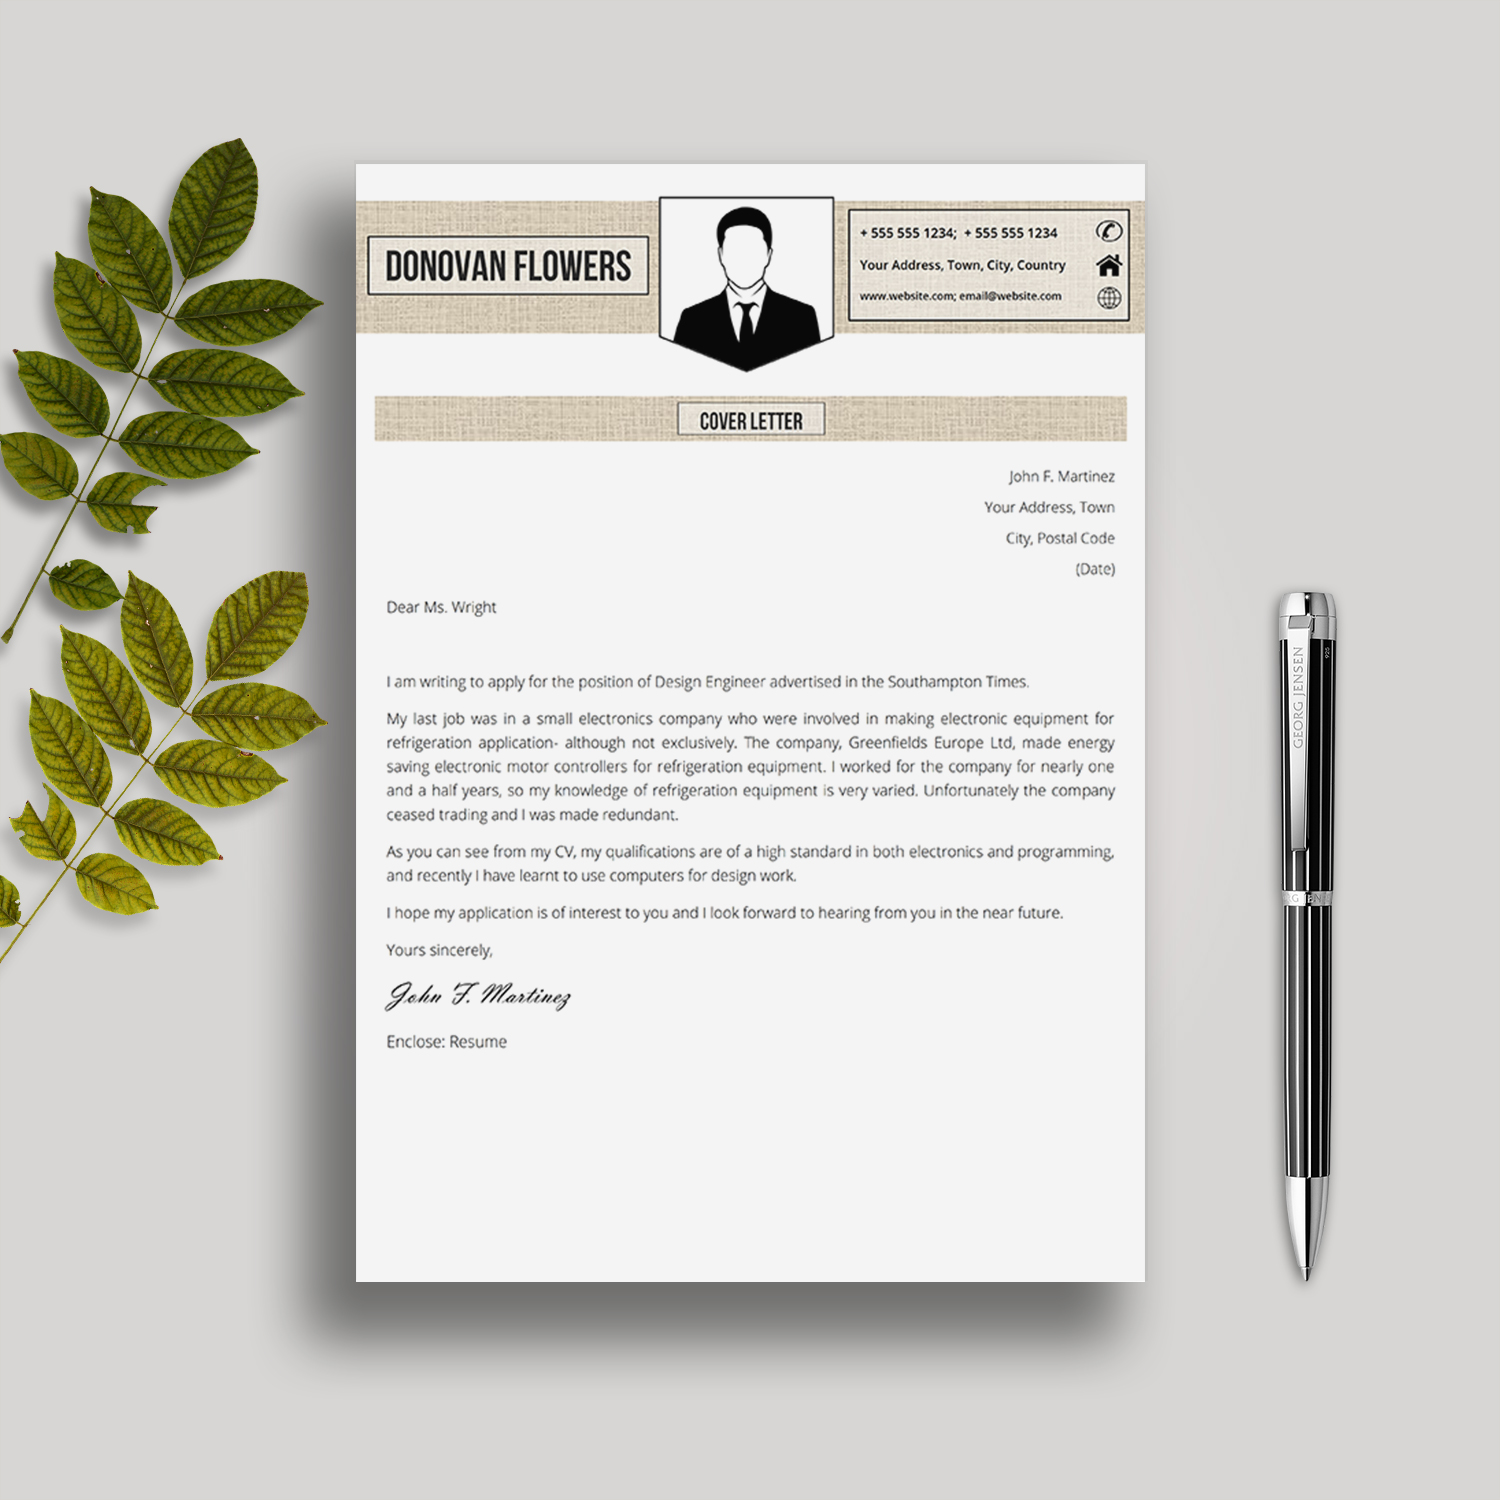 Resume Template And Cover Letter Donovan Flowers Creative